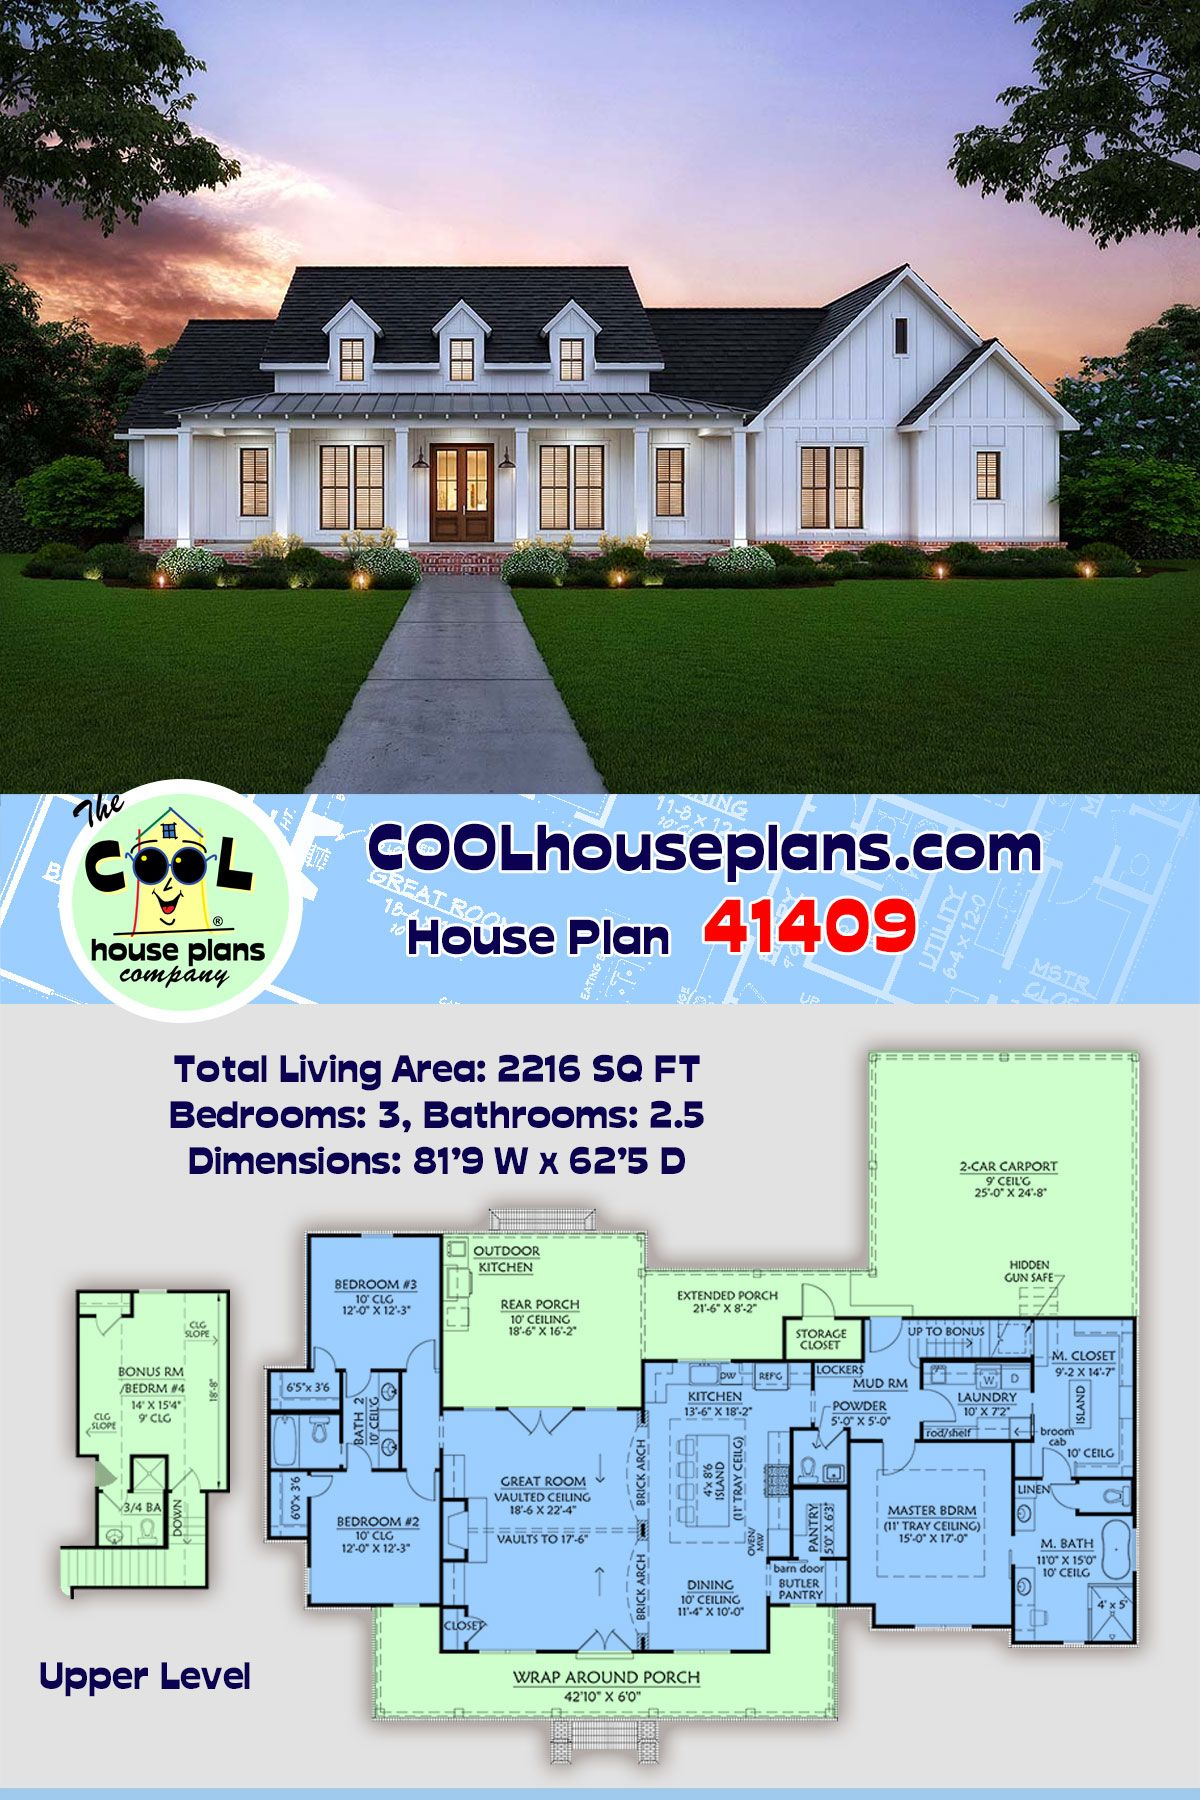 Southern Style House Plan 41409 With 3 Bed 3 Bath 2 Car Garage Farmhouse Plans House Plans House Plans Farmhouse